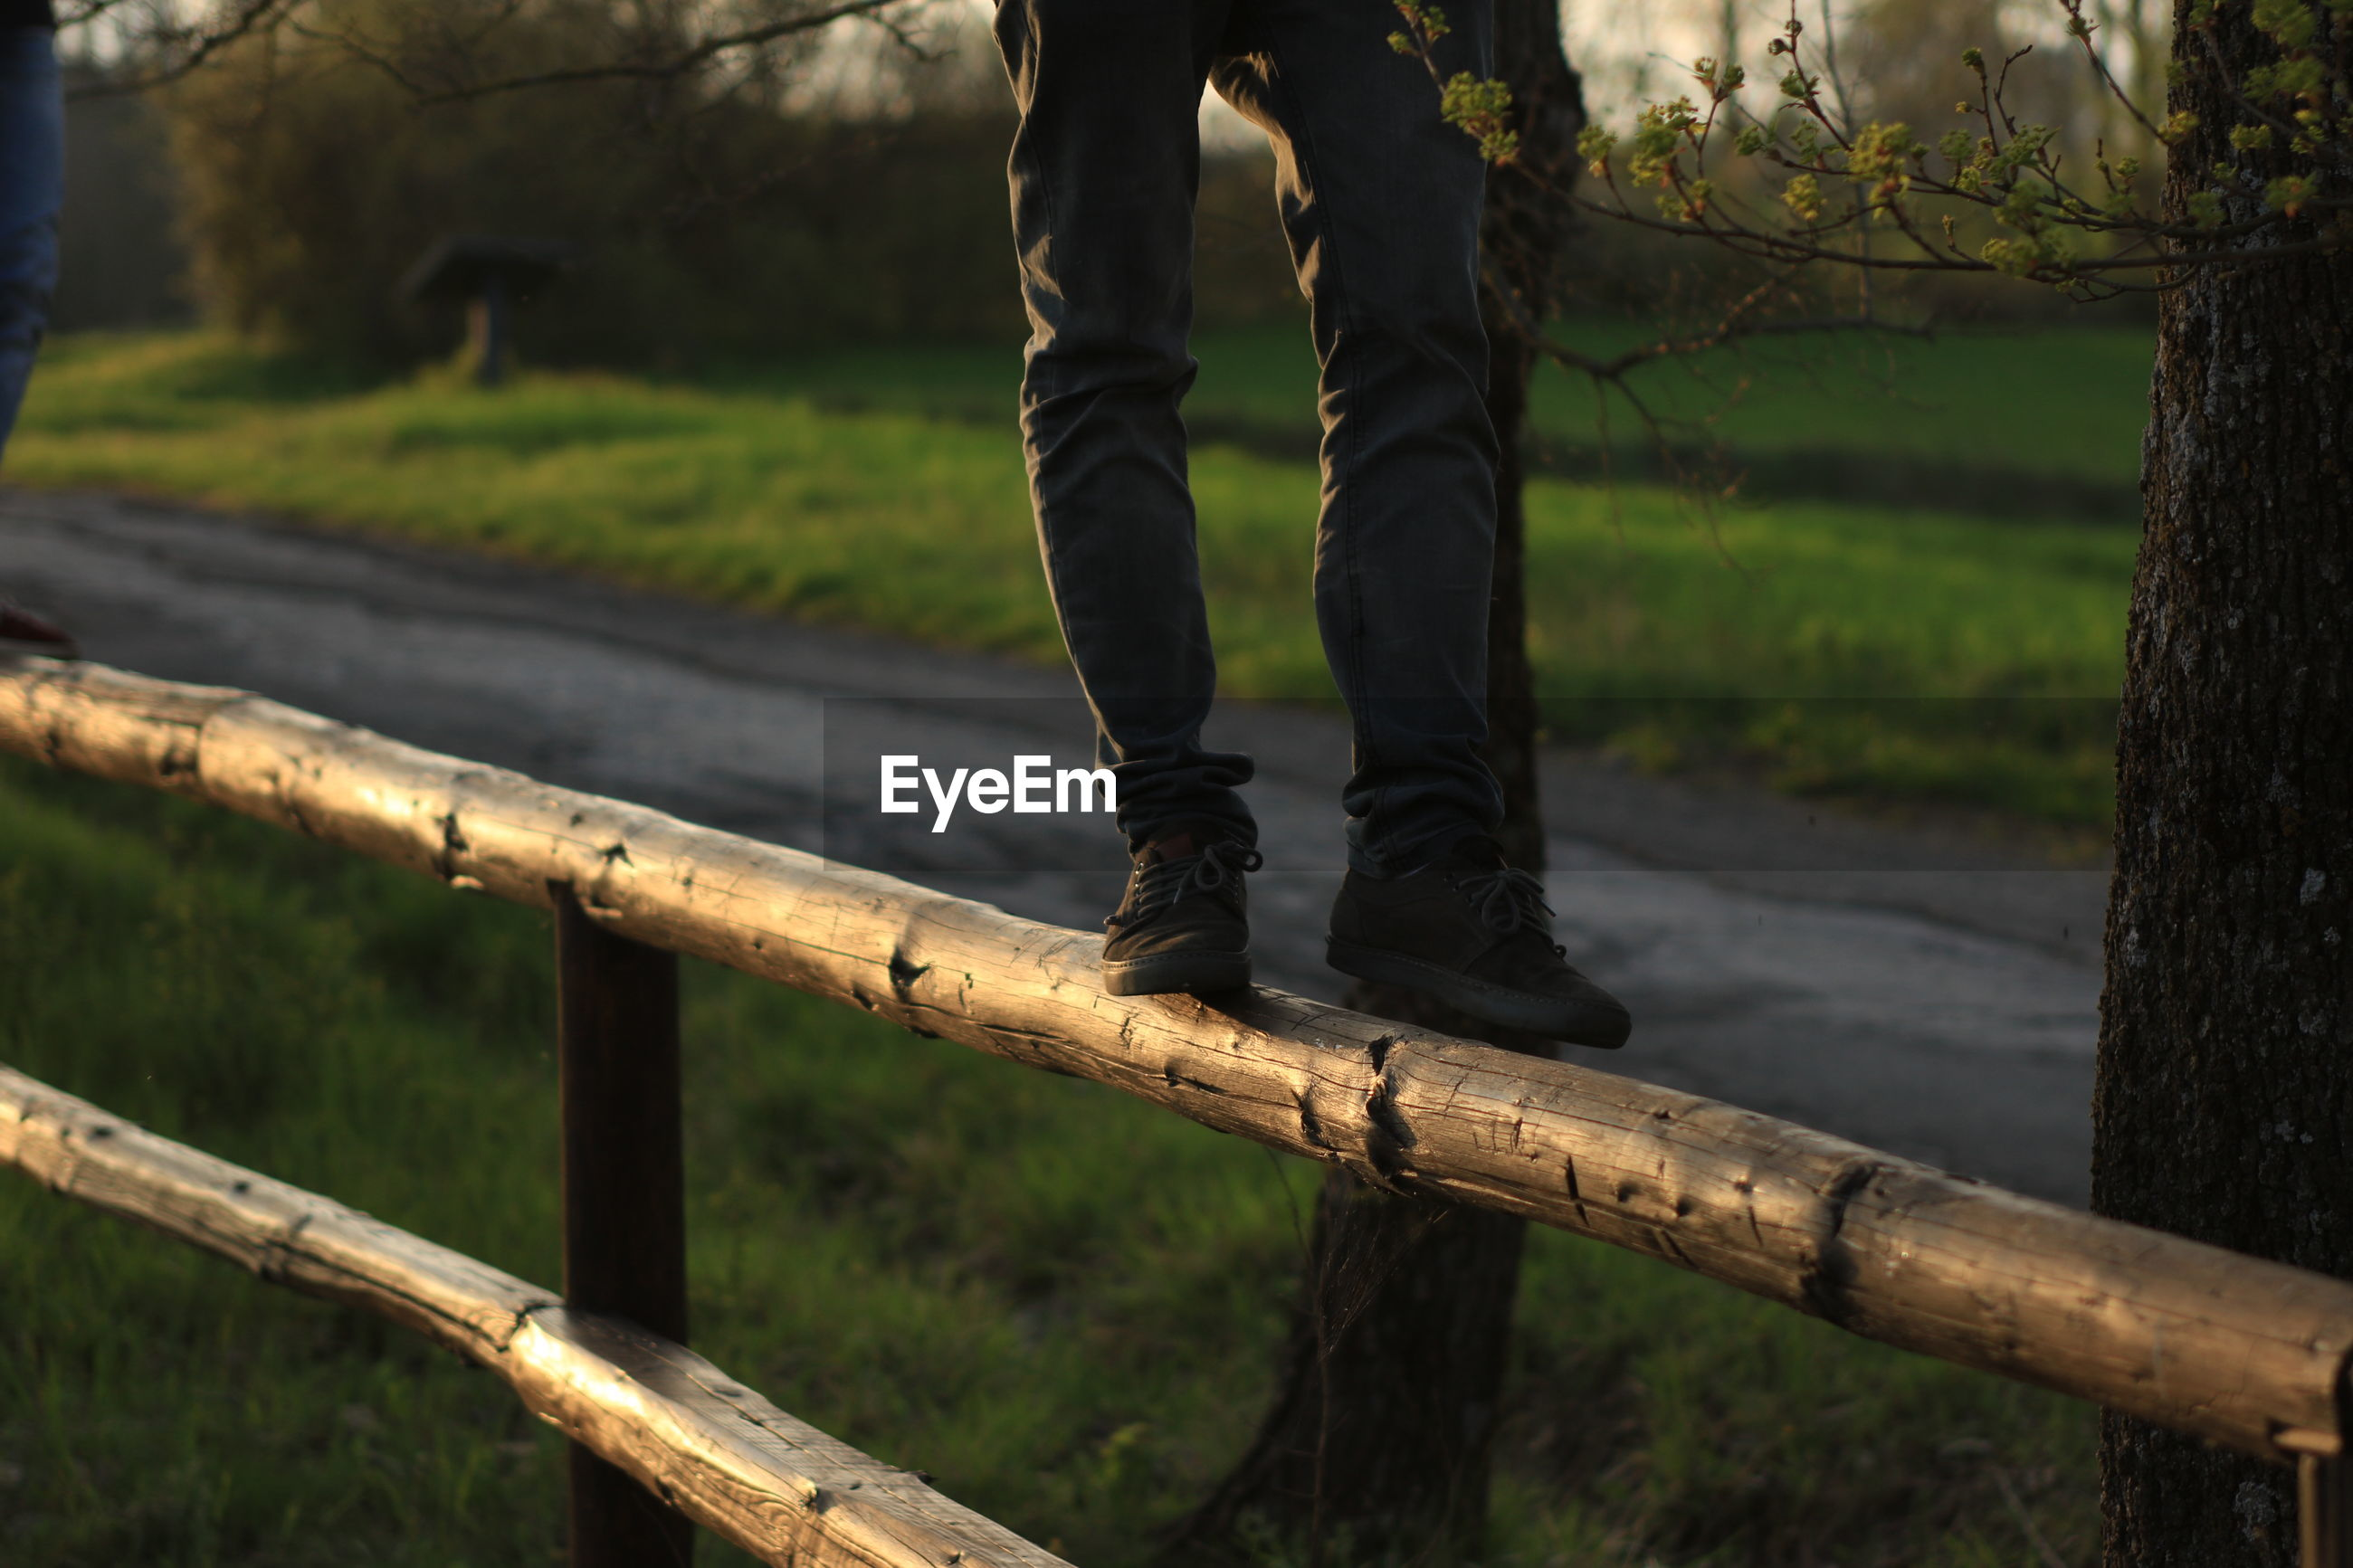 Low section of man standing on wooden railing at park